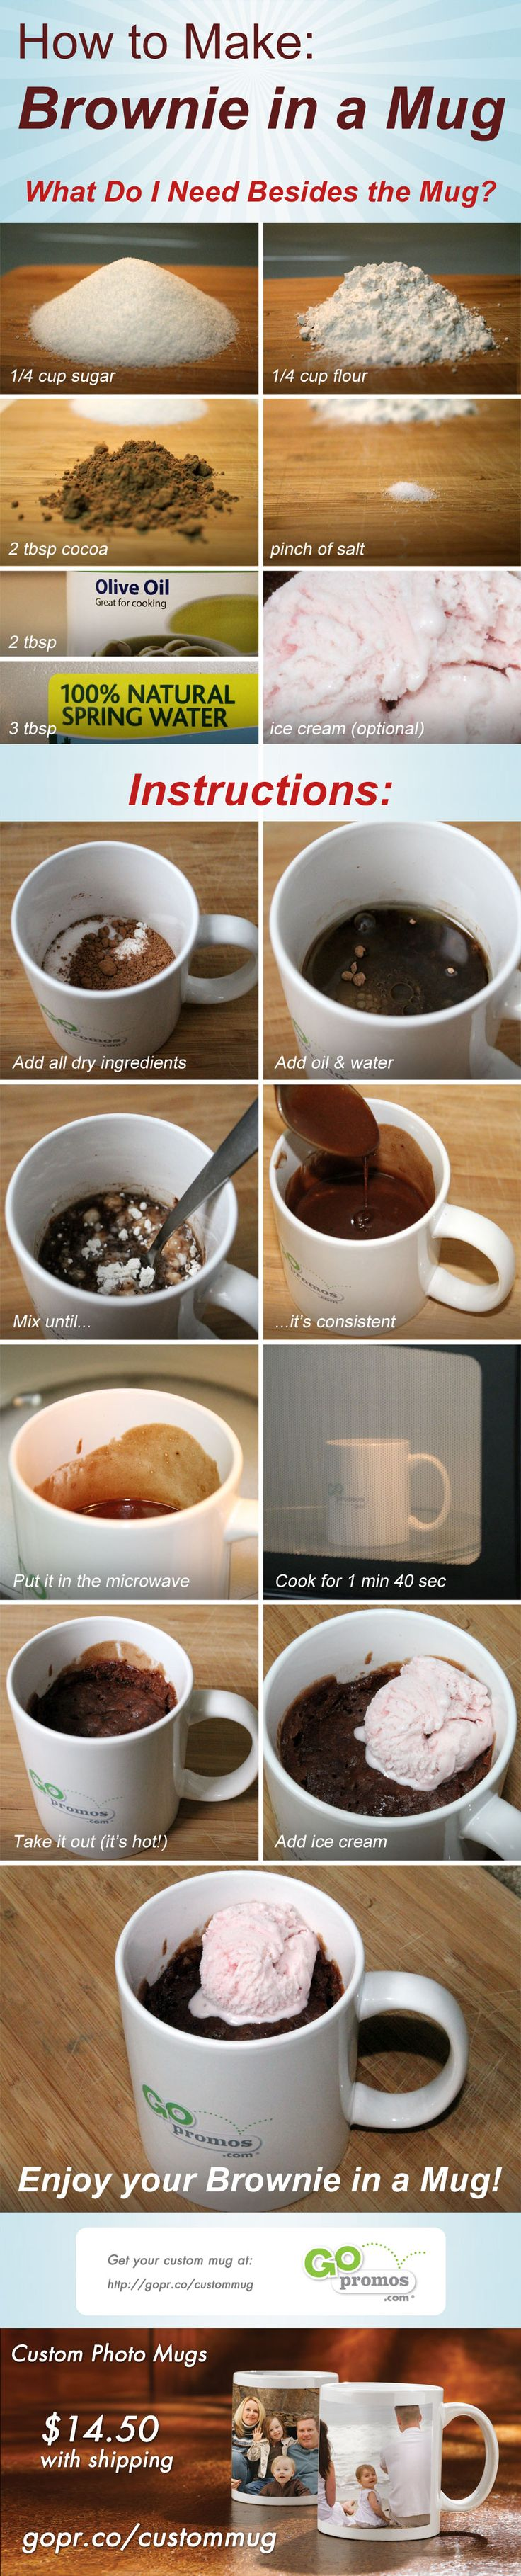 Quick and easy brownie in a mug recipe